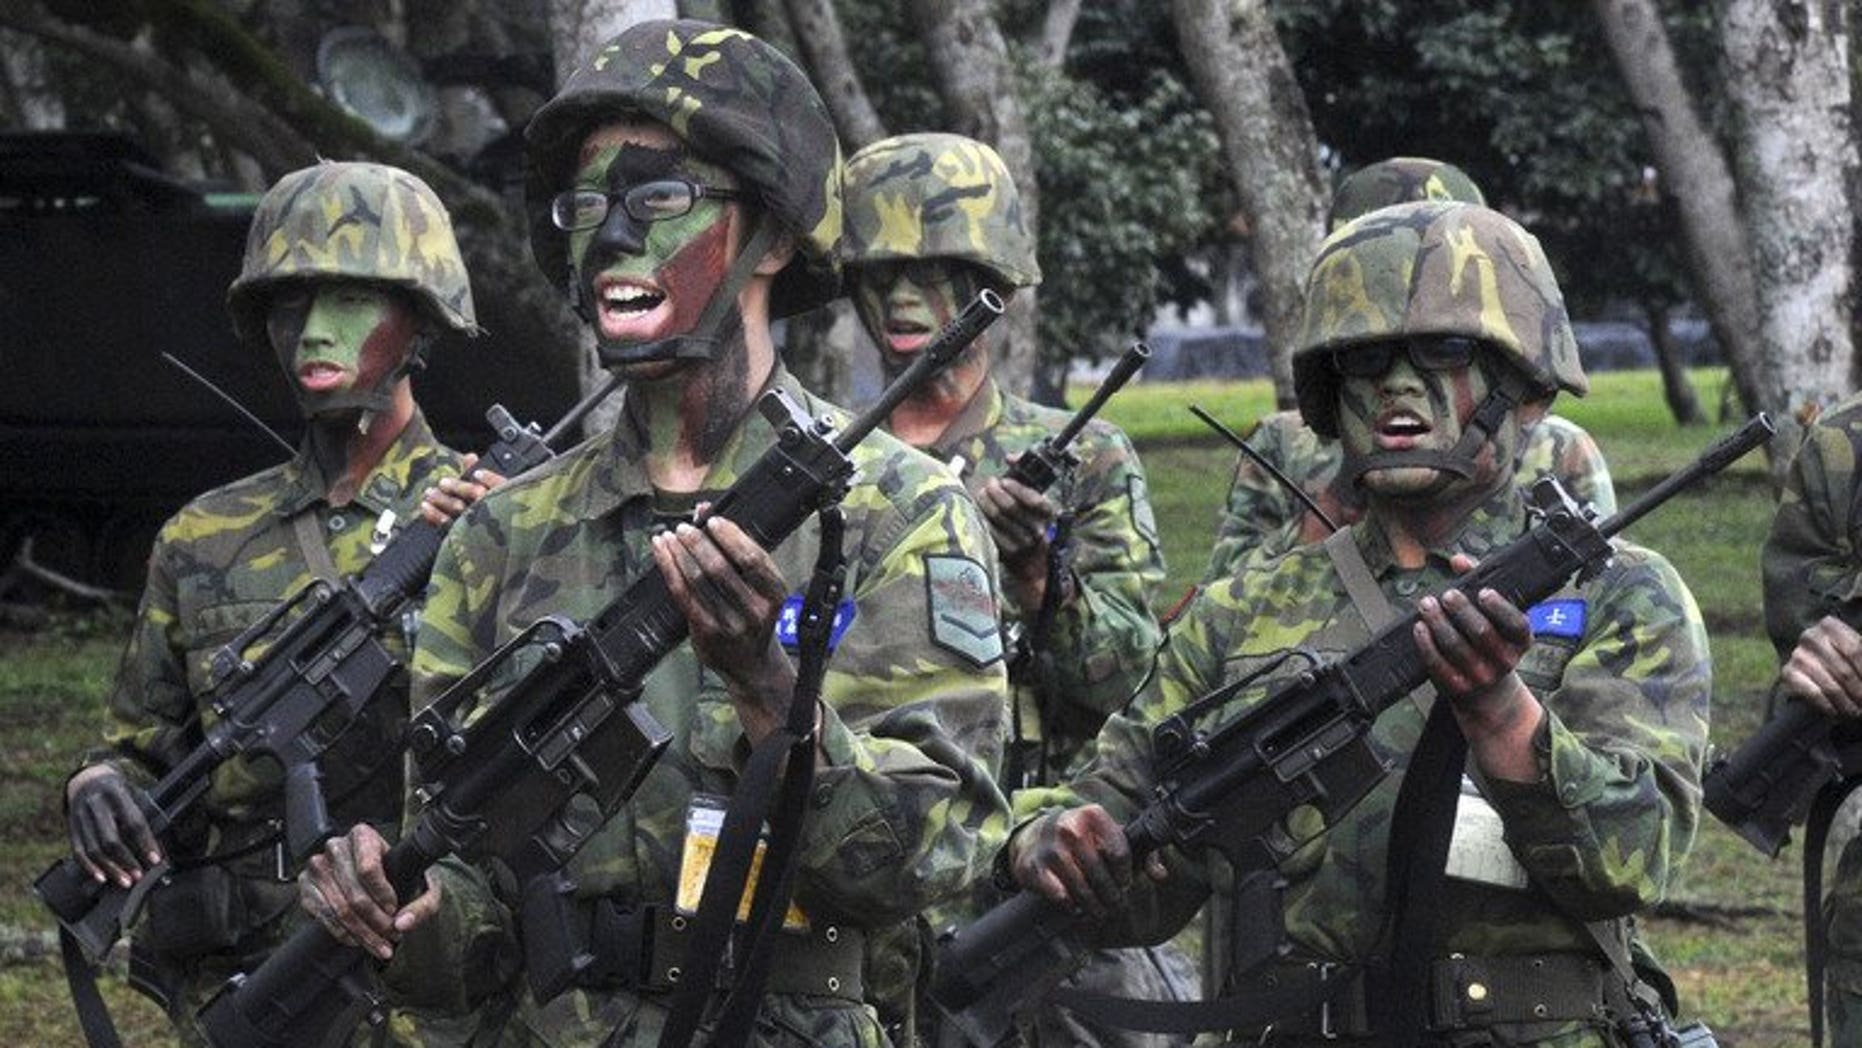 This file photo shows soldiers practising during a training session at the Hualien army base, on January 23, 2013. Taiwan's defence minister has apologised for the death of a corporal from heatstroke as the island's top government watchdog launches an investigation into bullying in the military, officials said on Tuesday.